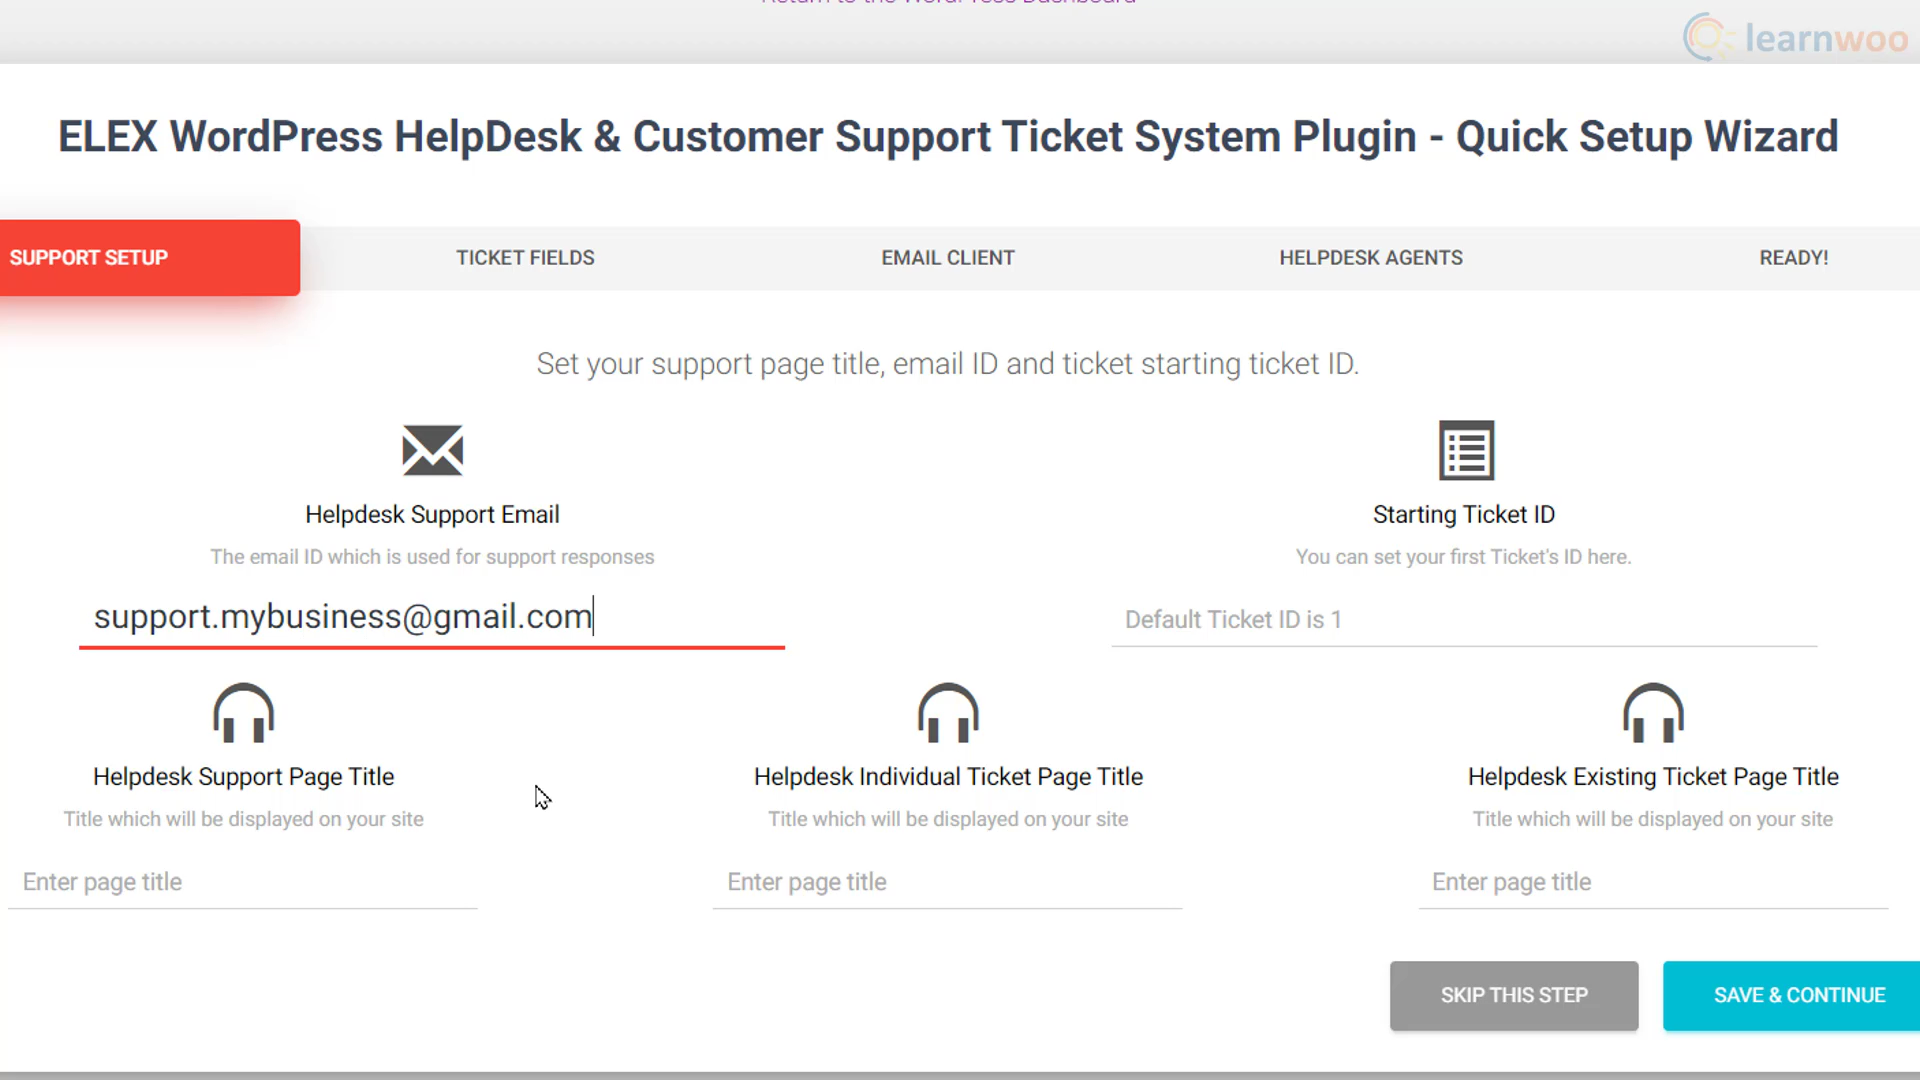 Manually set up Open Source Helpdesk & Customer Support Ticketing System